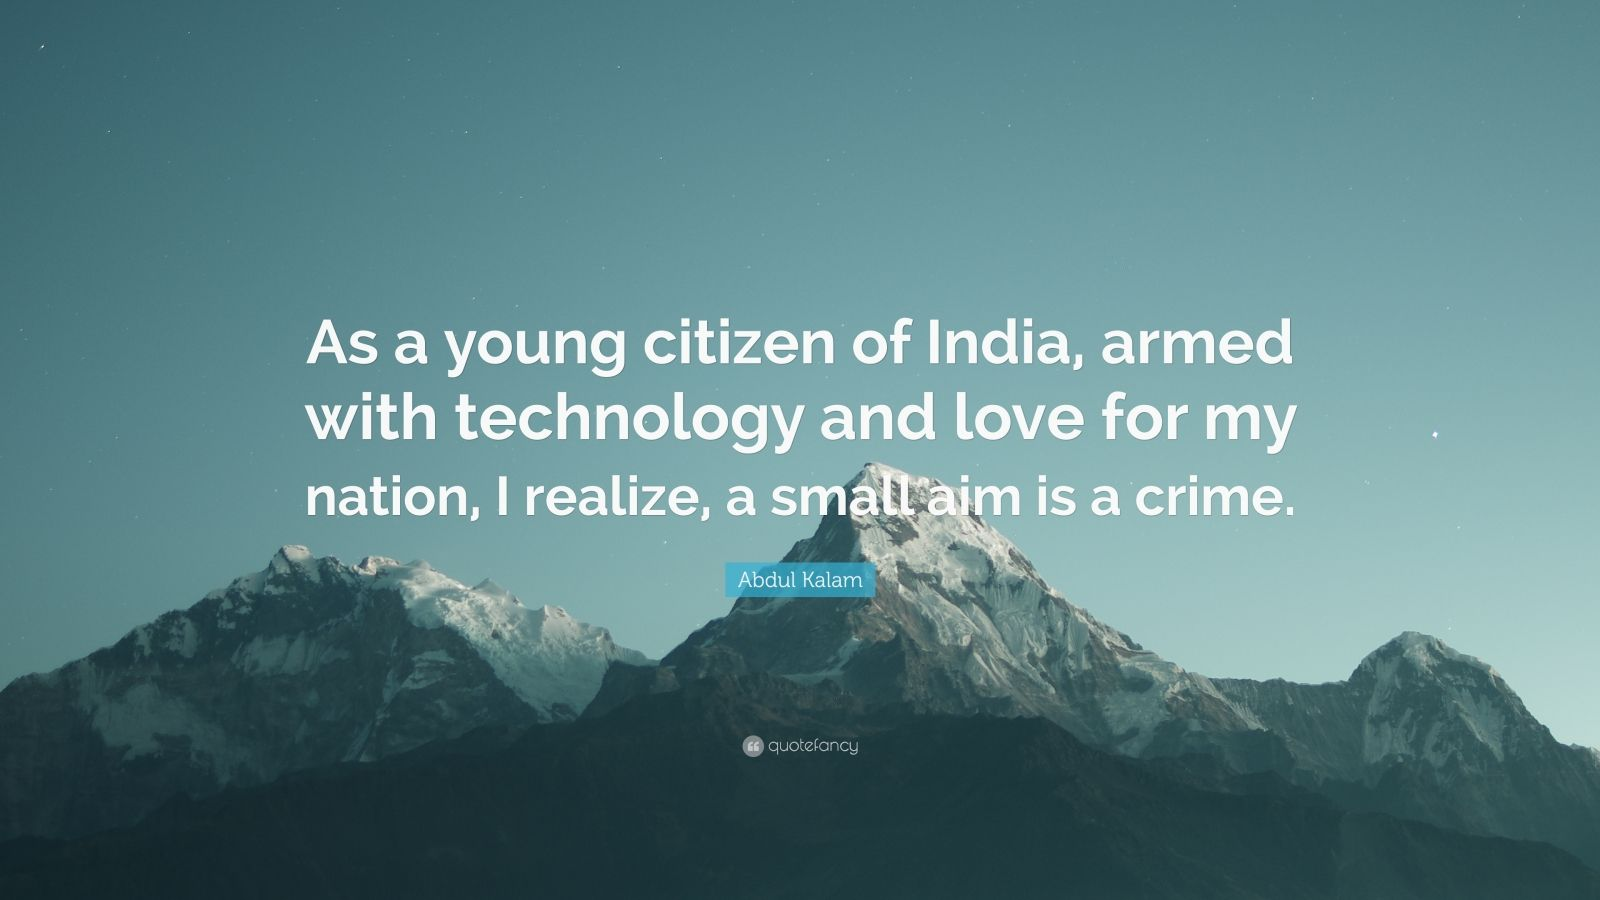 """Abdul Kalam Quote: """"As a young citizen of India, armed with technology and love for my nation, I realize, a small aim is a crime."""""""